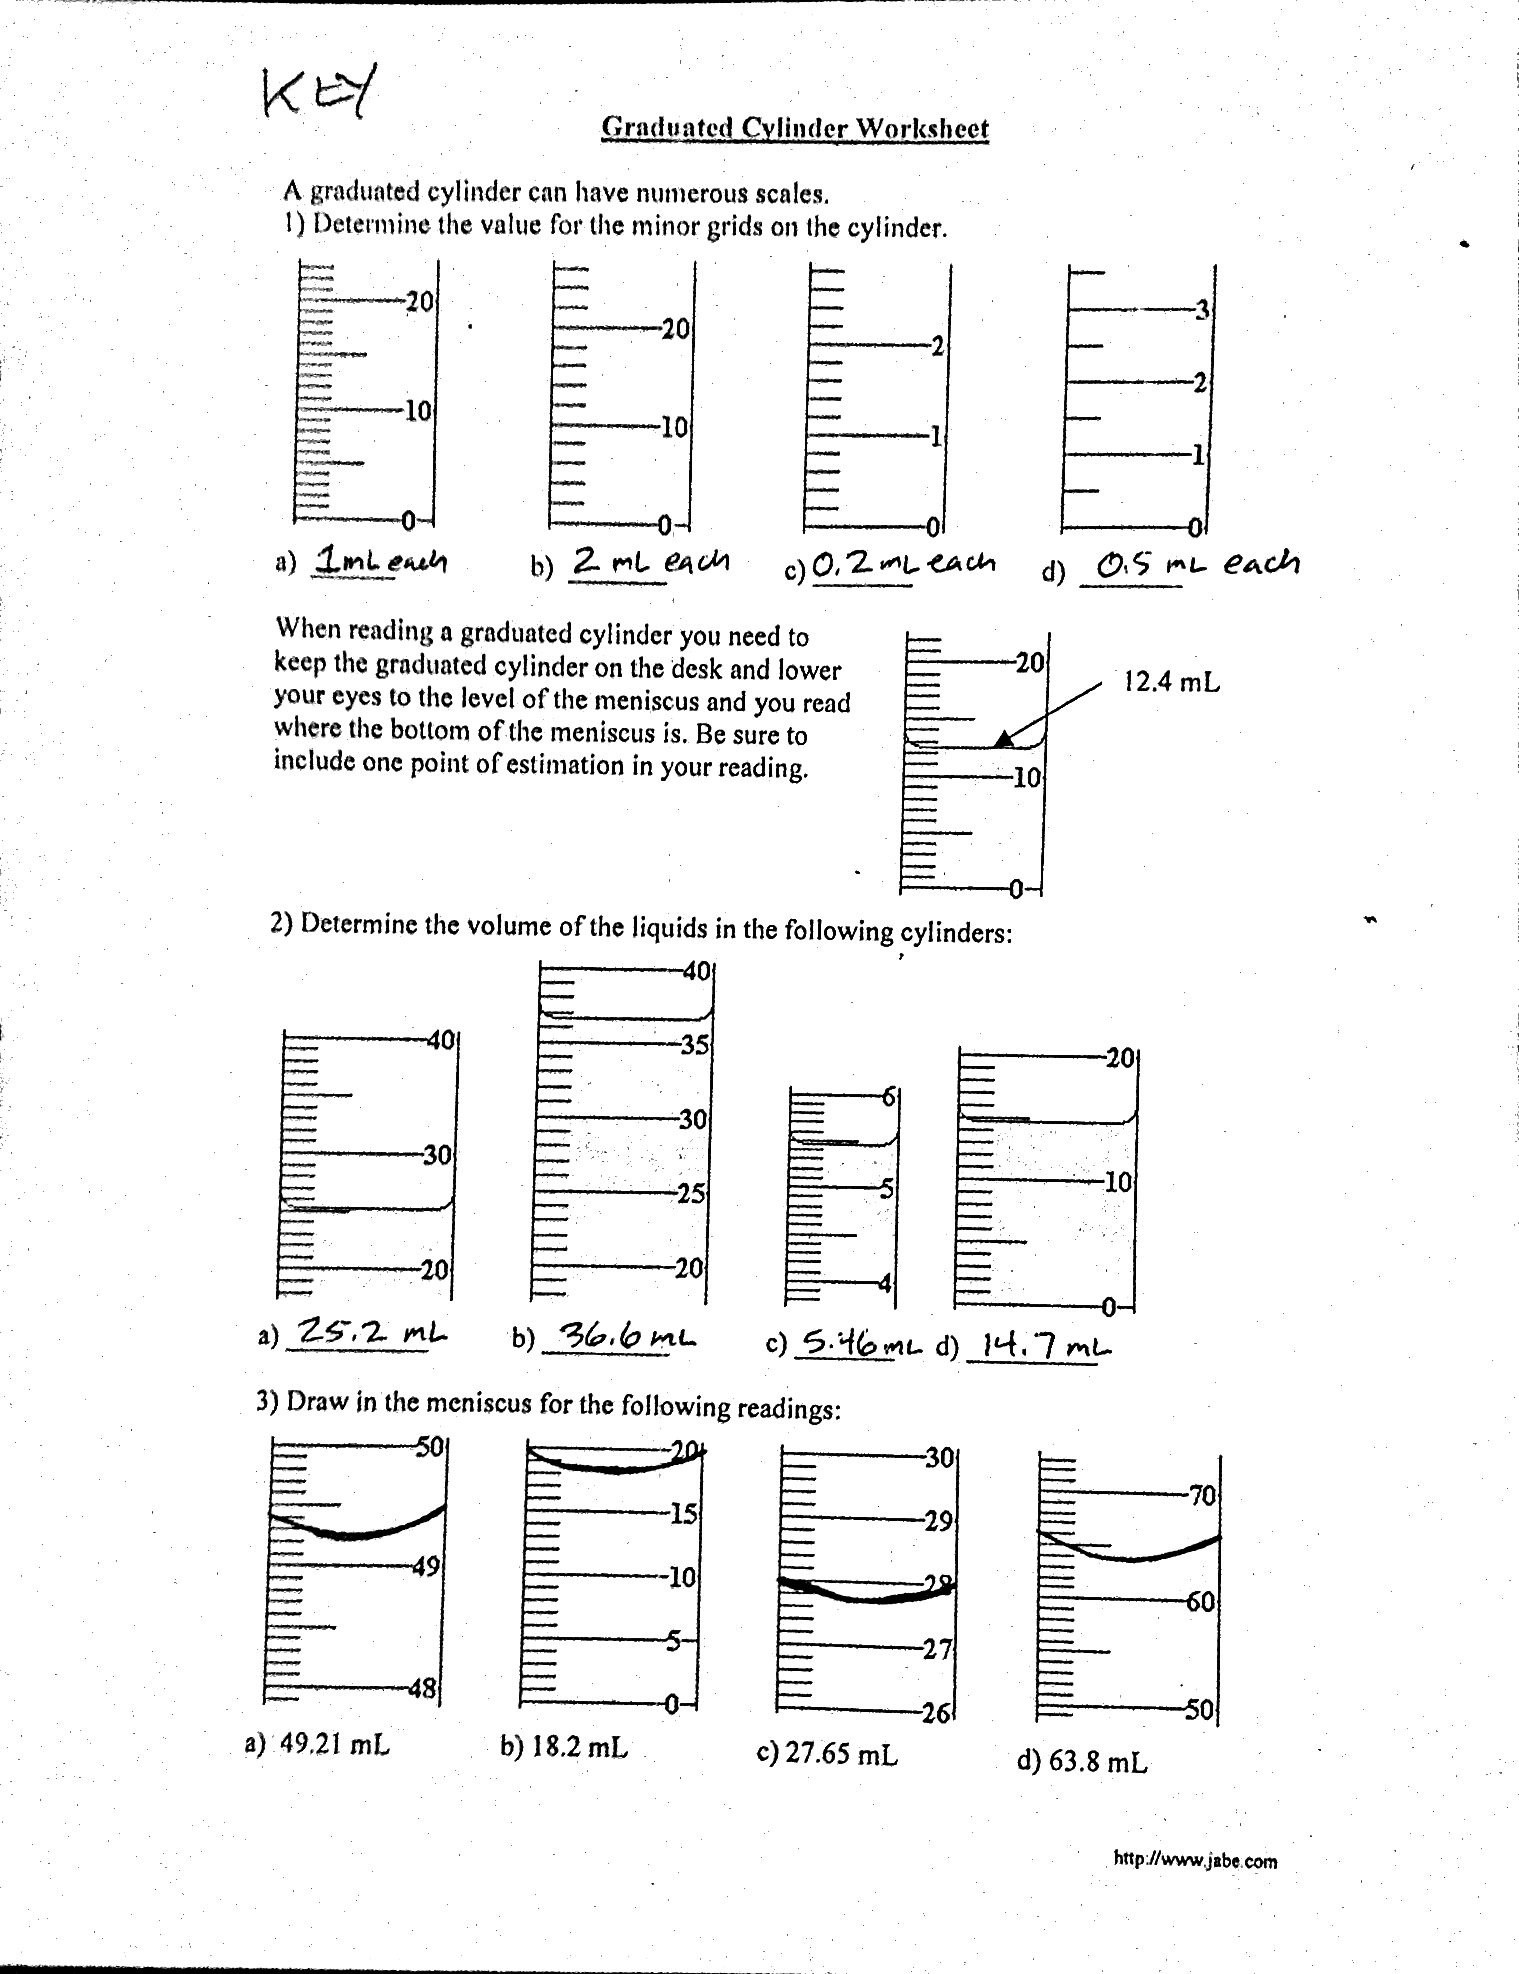 30 Reading Graduated Cylinders Worksheet